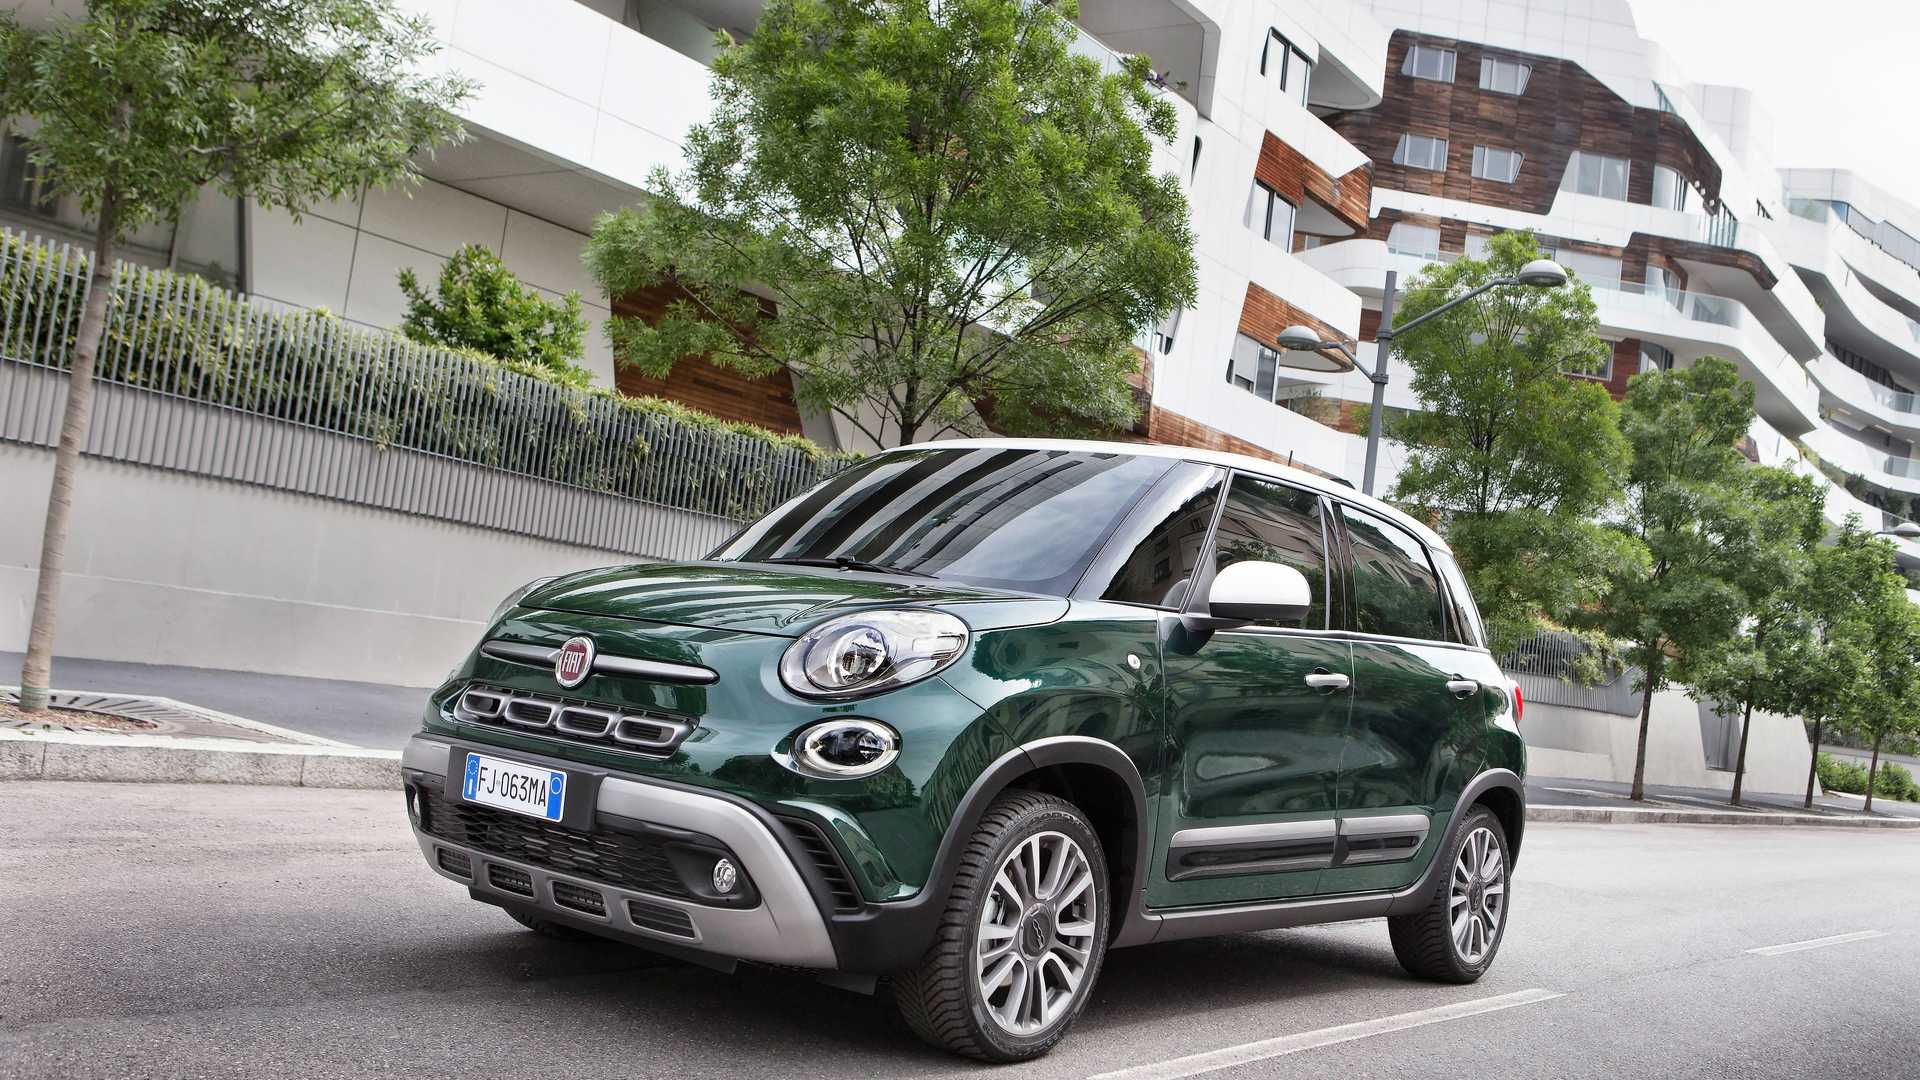 2018_Fiat_500L_cross_facelift_08